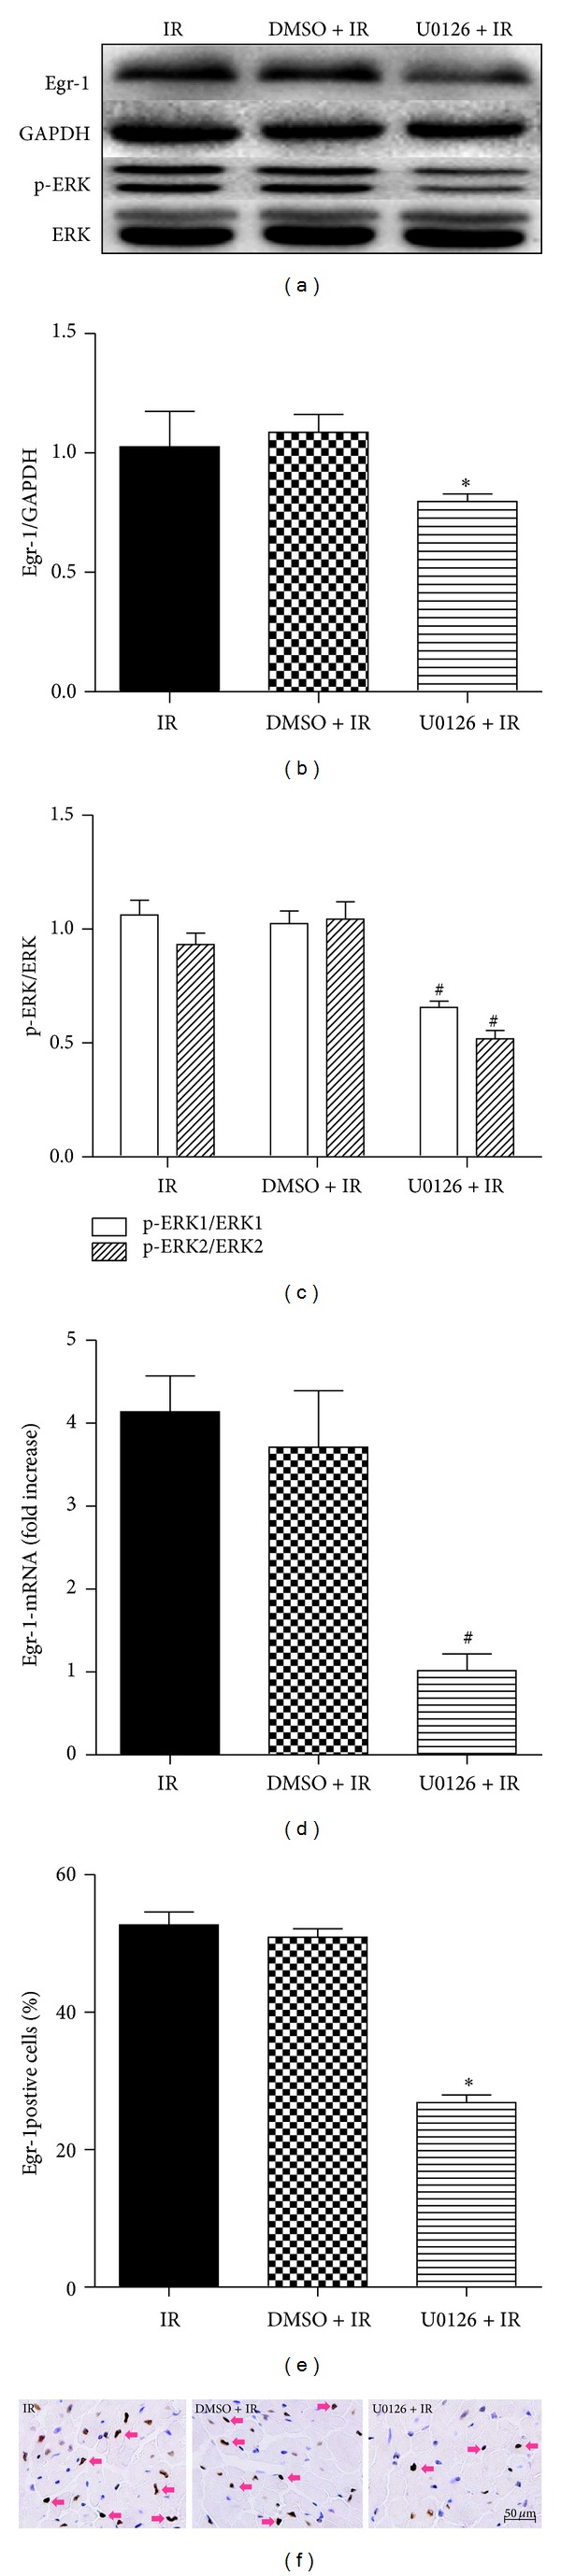 ERK1/2 activation is responsible for Egr-1expression during myocardial I/R injury. Mice received U0126 (an inhibitor of ERK1/2 kinase, 20 mg/kg, i.p.) or its vehicle 0.1% v/v DMSO treatment before surgery. As described previously, myocardial expression of Egr-1 and p-ERK1/2 was measured using western blot (a). The corresponding densitometric analysis is shown in (b-c) ( n = 3/group). The mRNA levels of Egr-1 are shown as fold increase versus U0126 + IR (d, n = 3/group). Immunohistochemical staining of Egr-1 was performed and the quantitation results of Egr-1positive cells were shown in panel (e). Representative images were shown in panel (f) (3 mice /group). Pink arrows indicate Egr-1positive cells. Scale bar = 50 μ m. * P